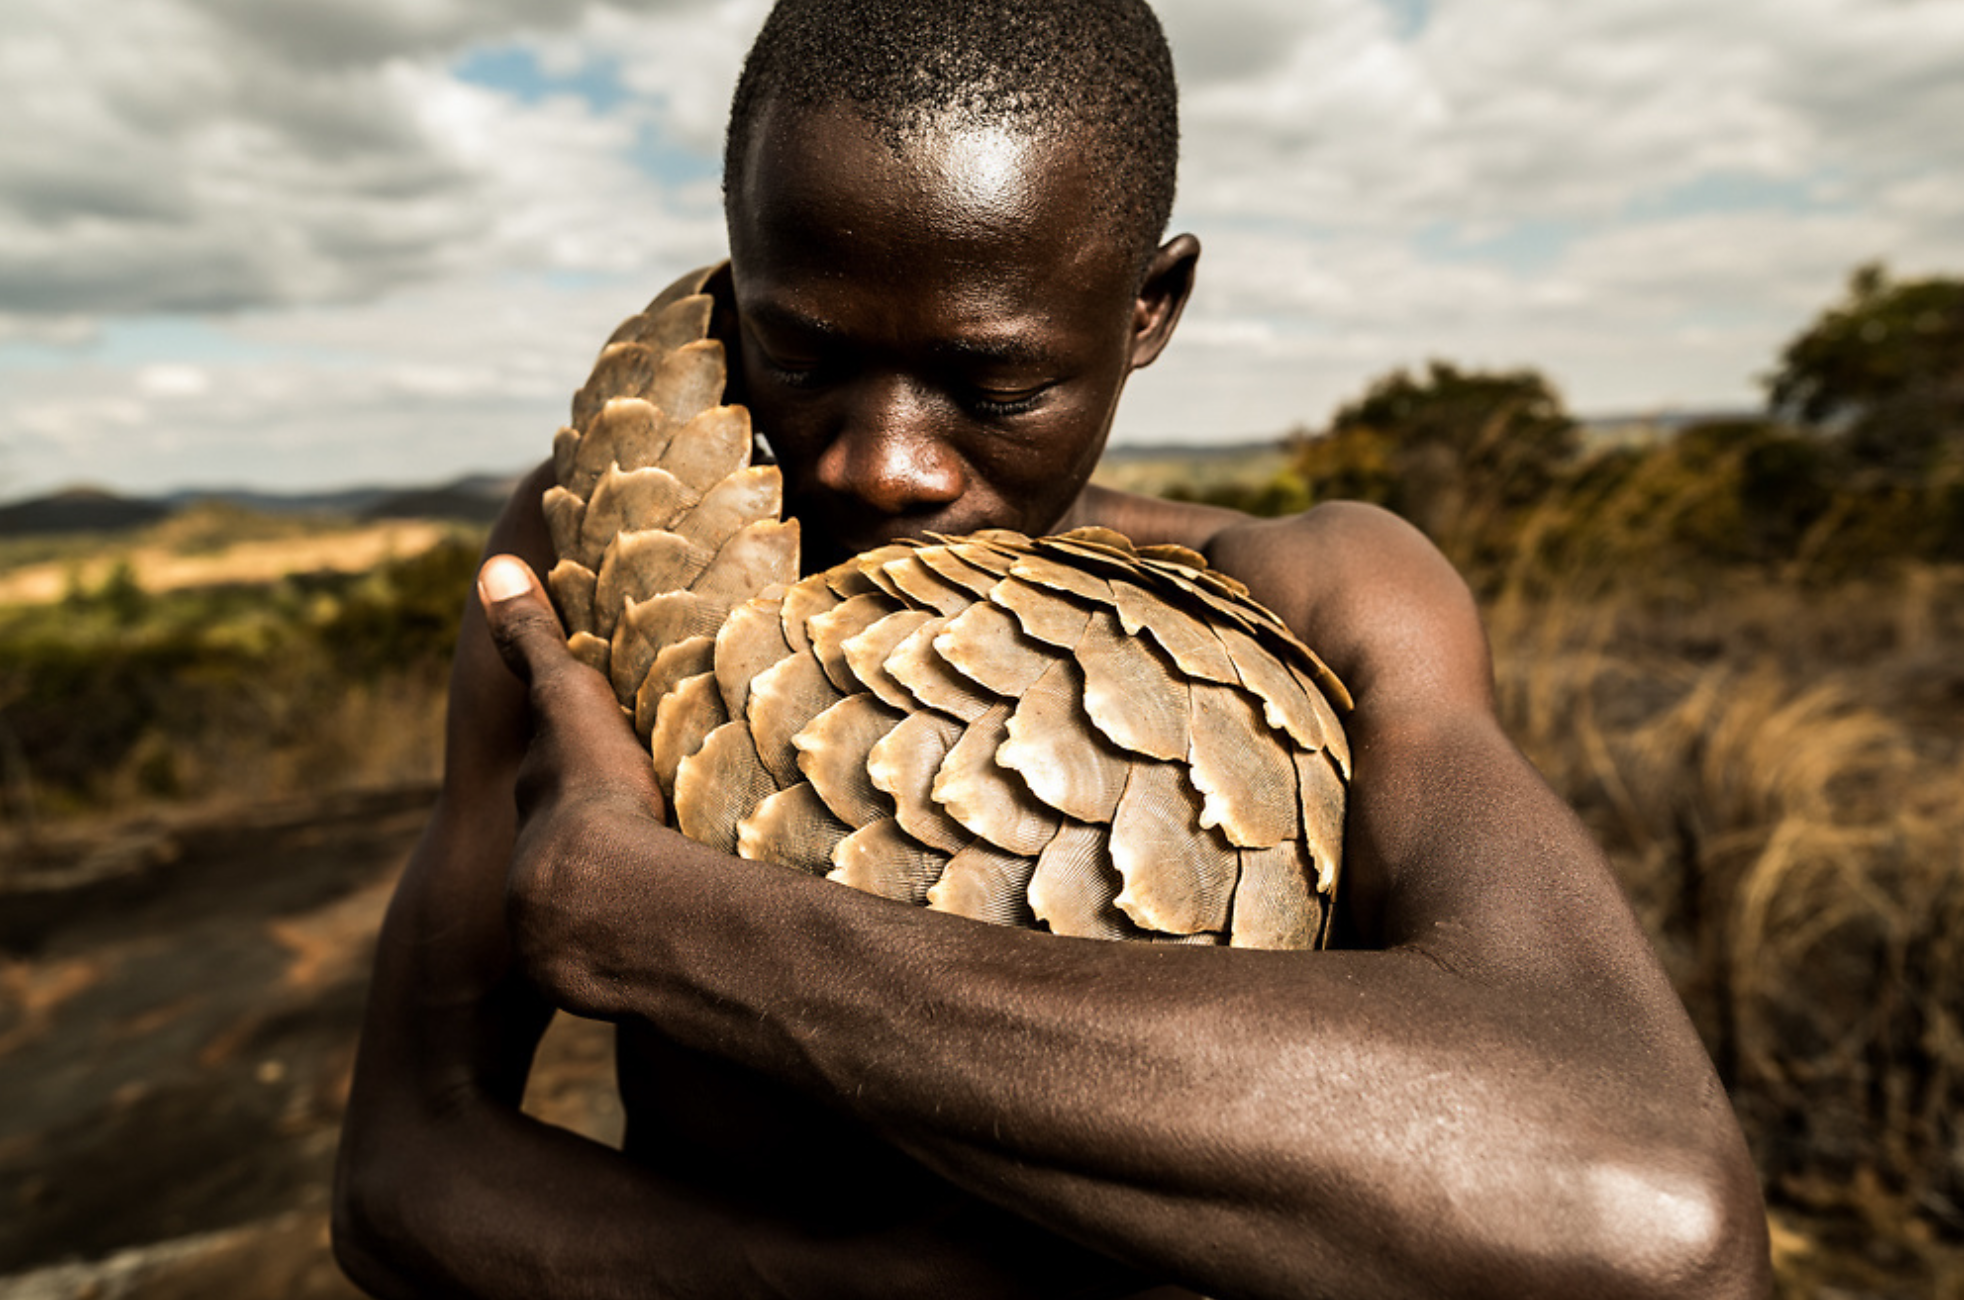 Man with Pangolin